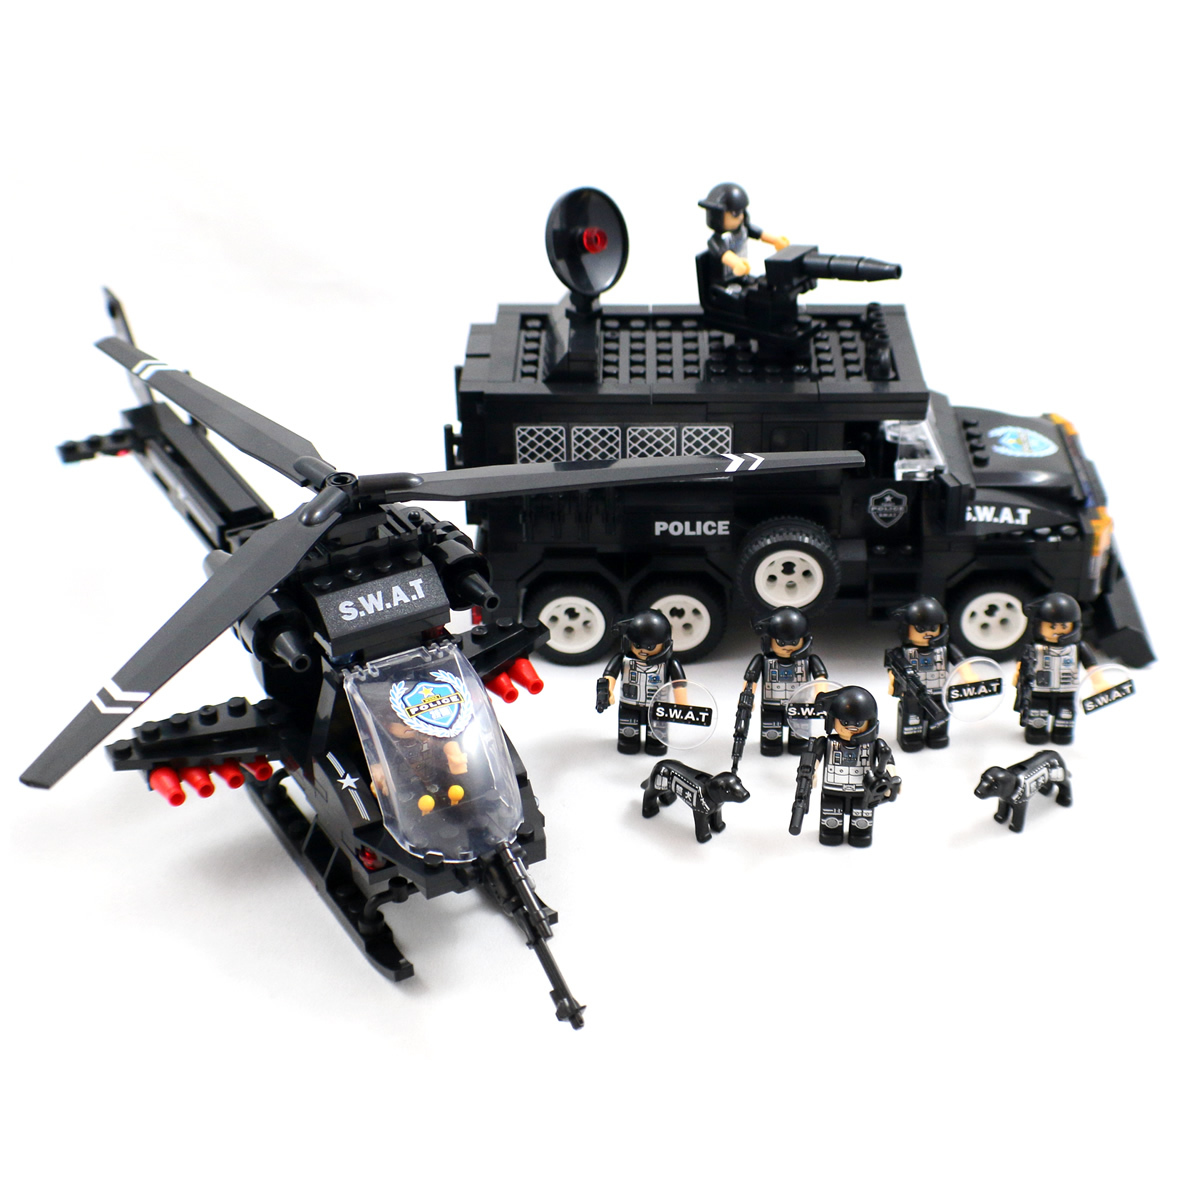 Lego Swat Photo1: Police SWAT With Helicopter Building Block Toy